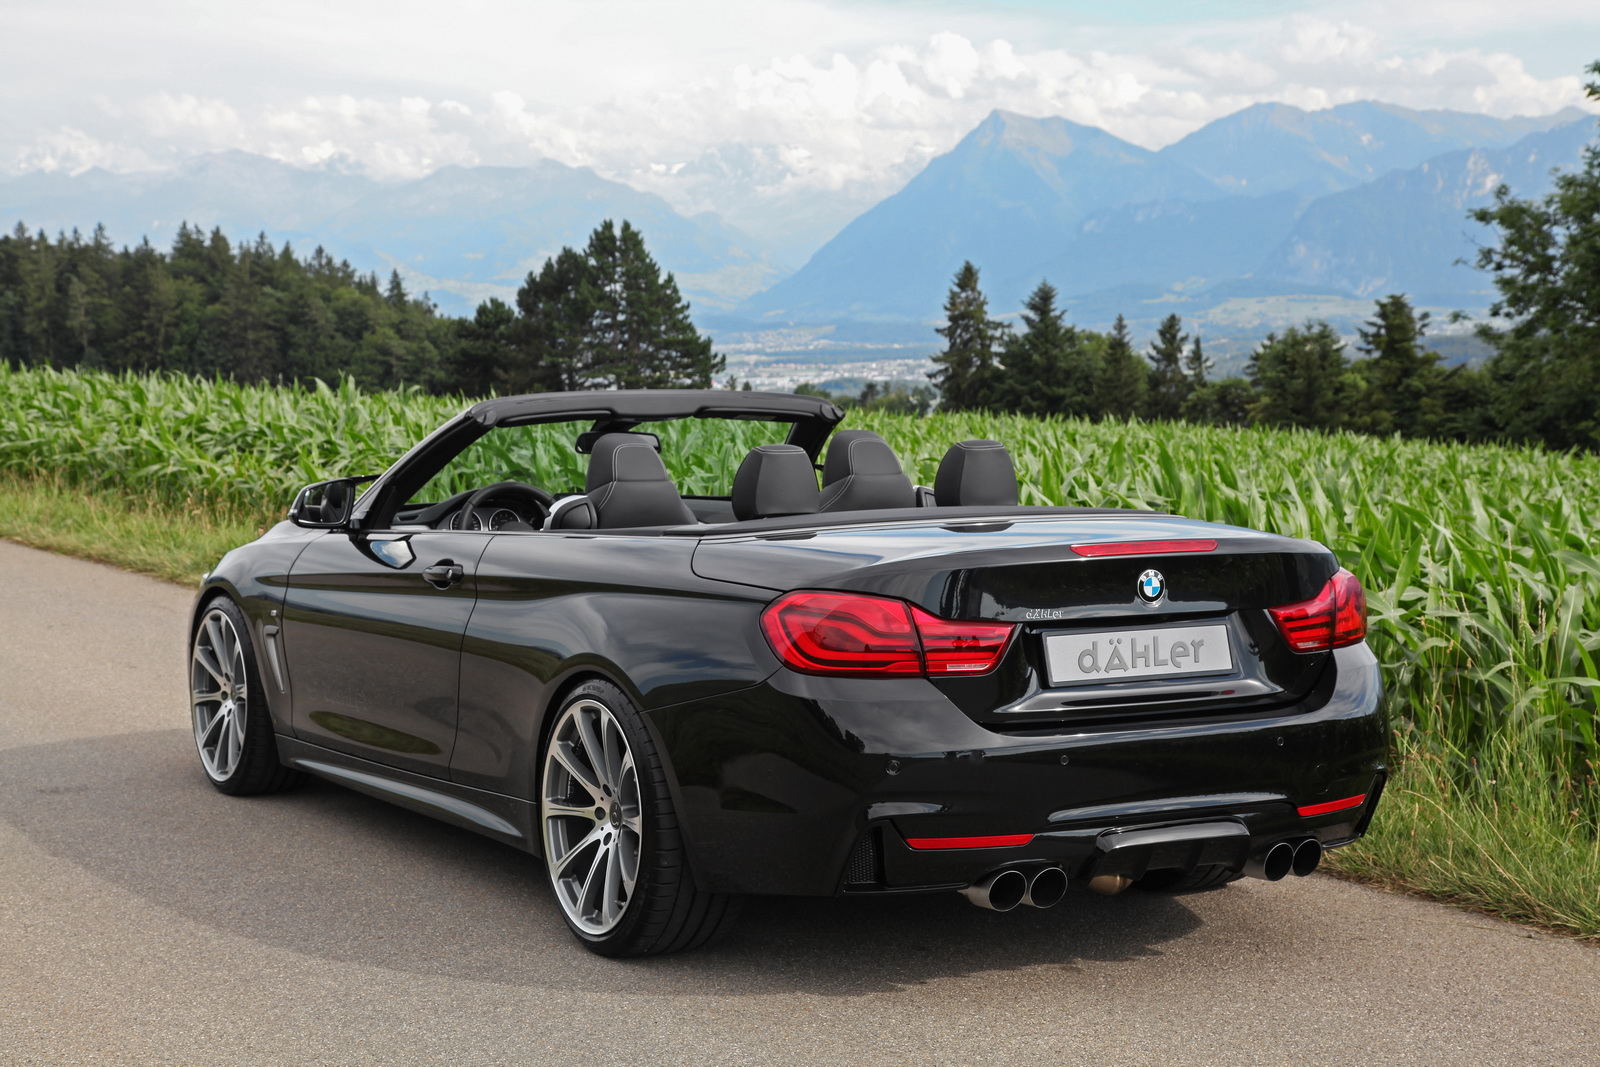 bmw-4-series-440i-dahler-tuning-8